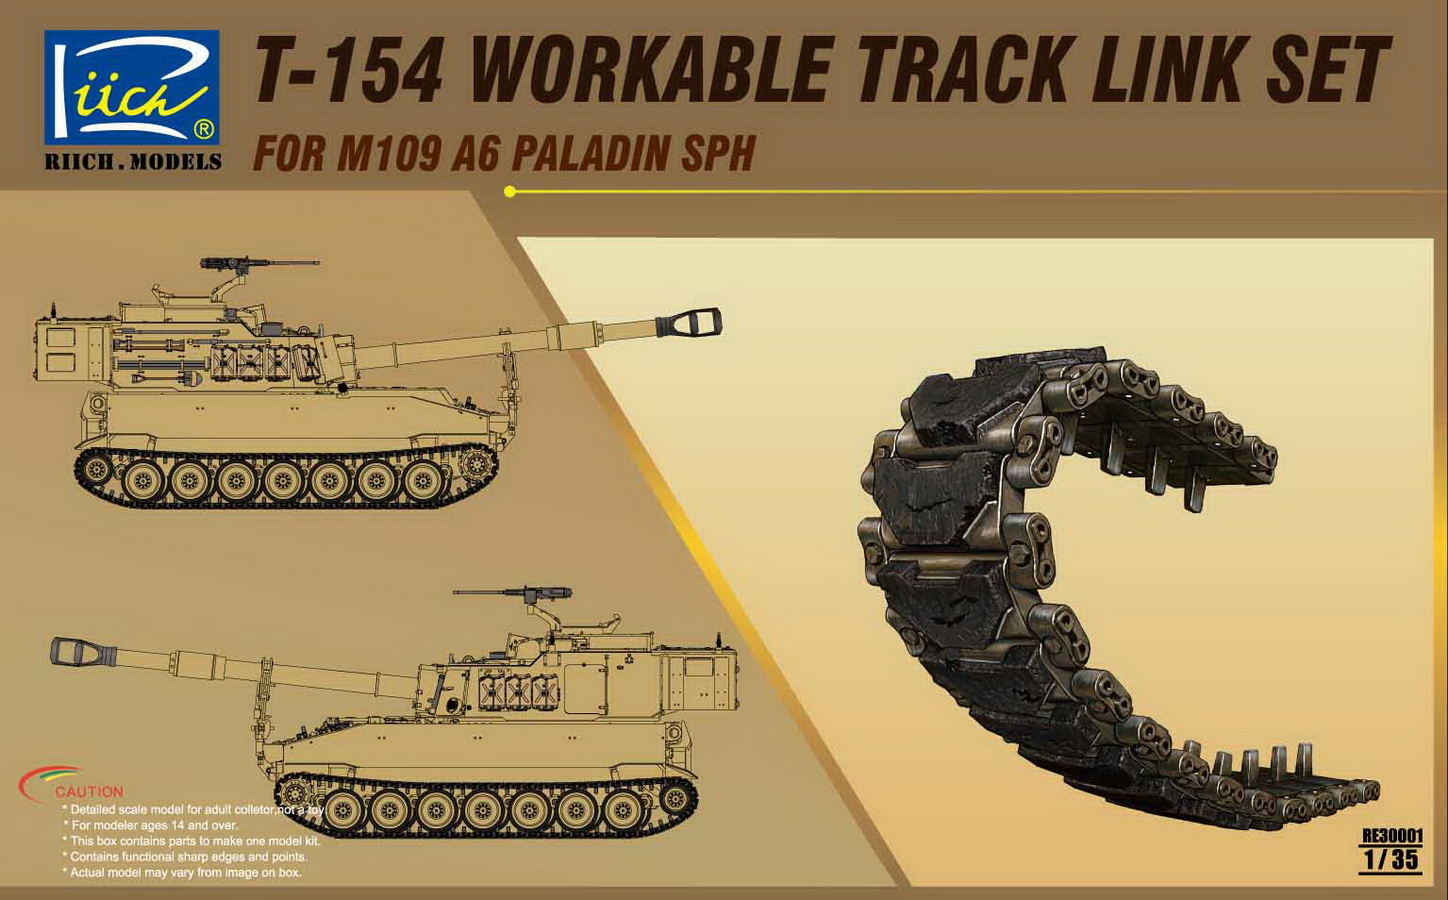 Riich 1/35 T-154 Workable Track set for M109A6 SPH